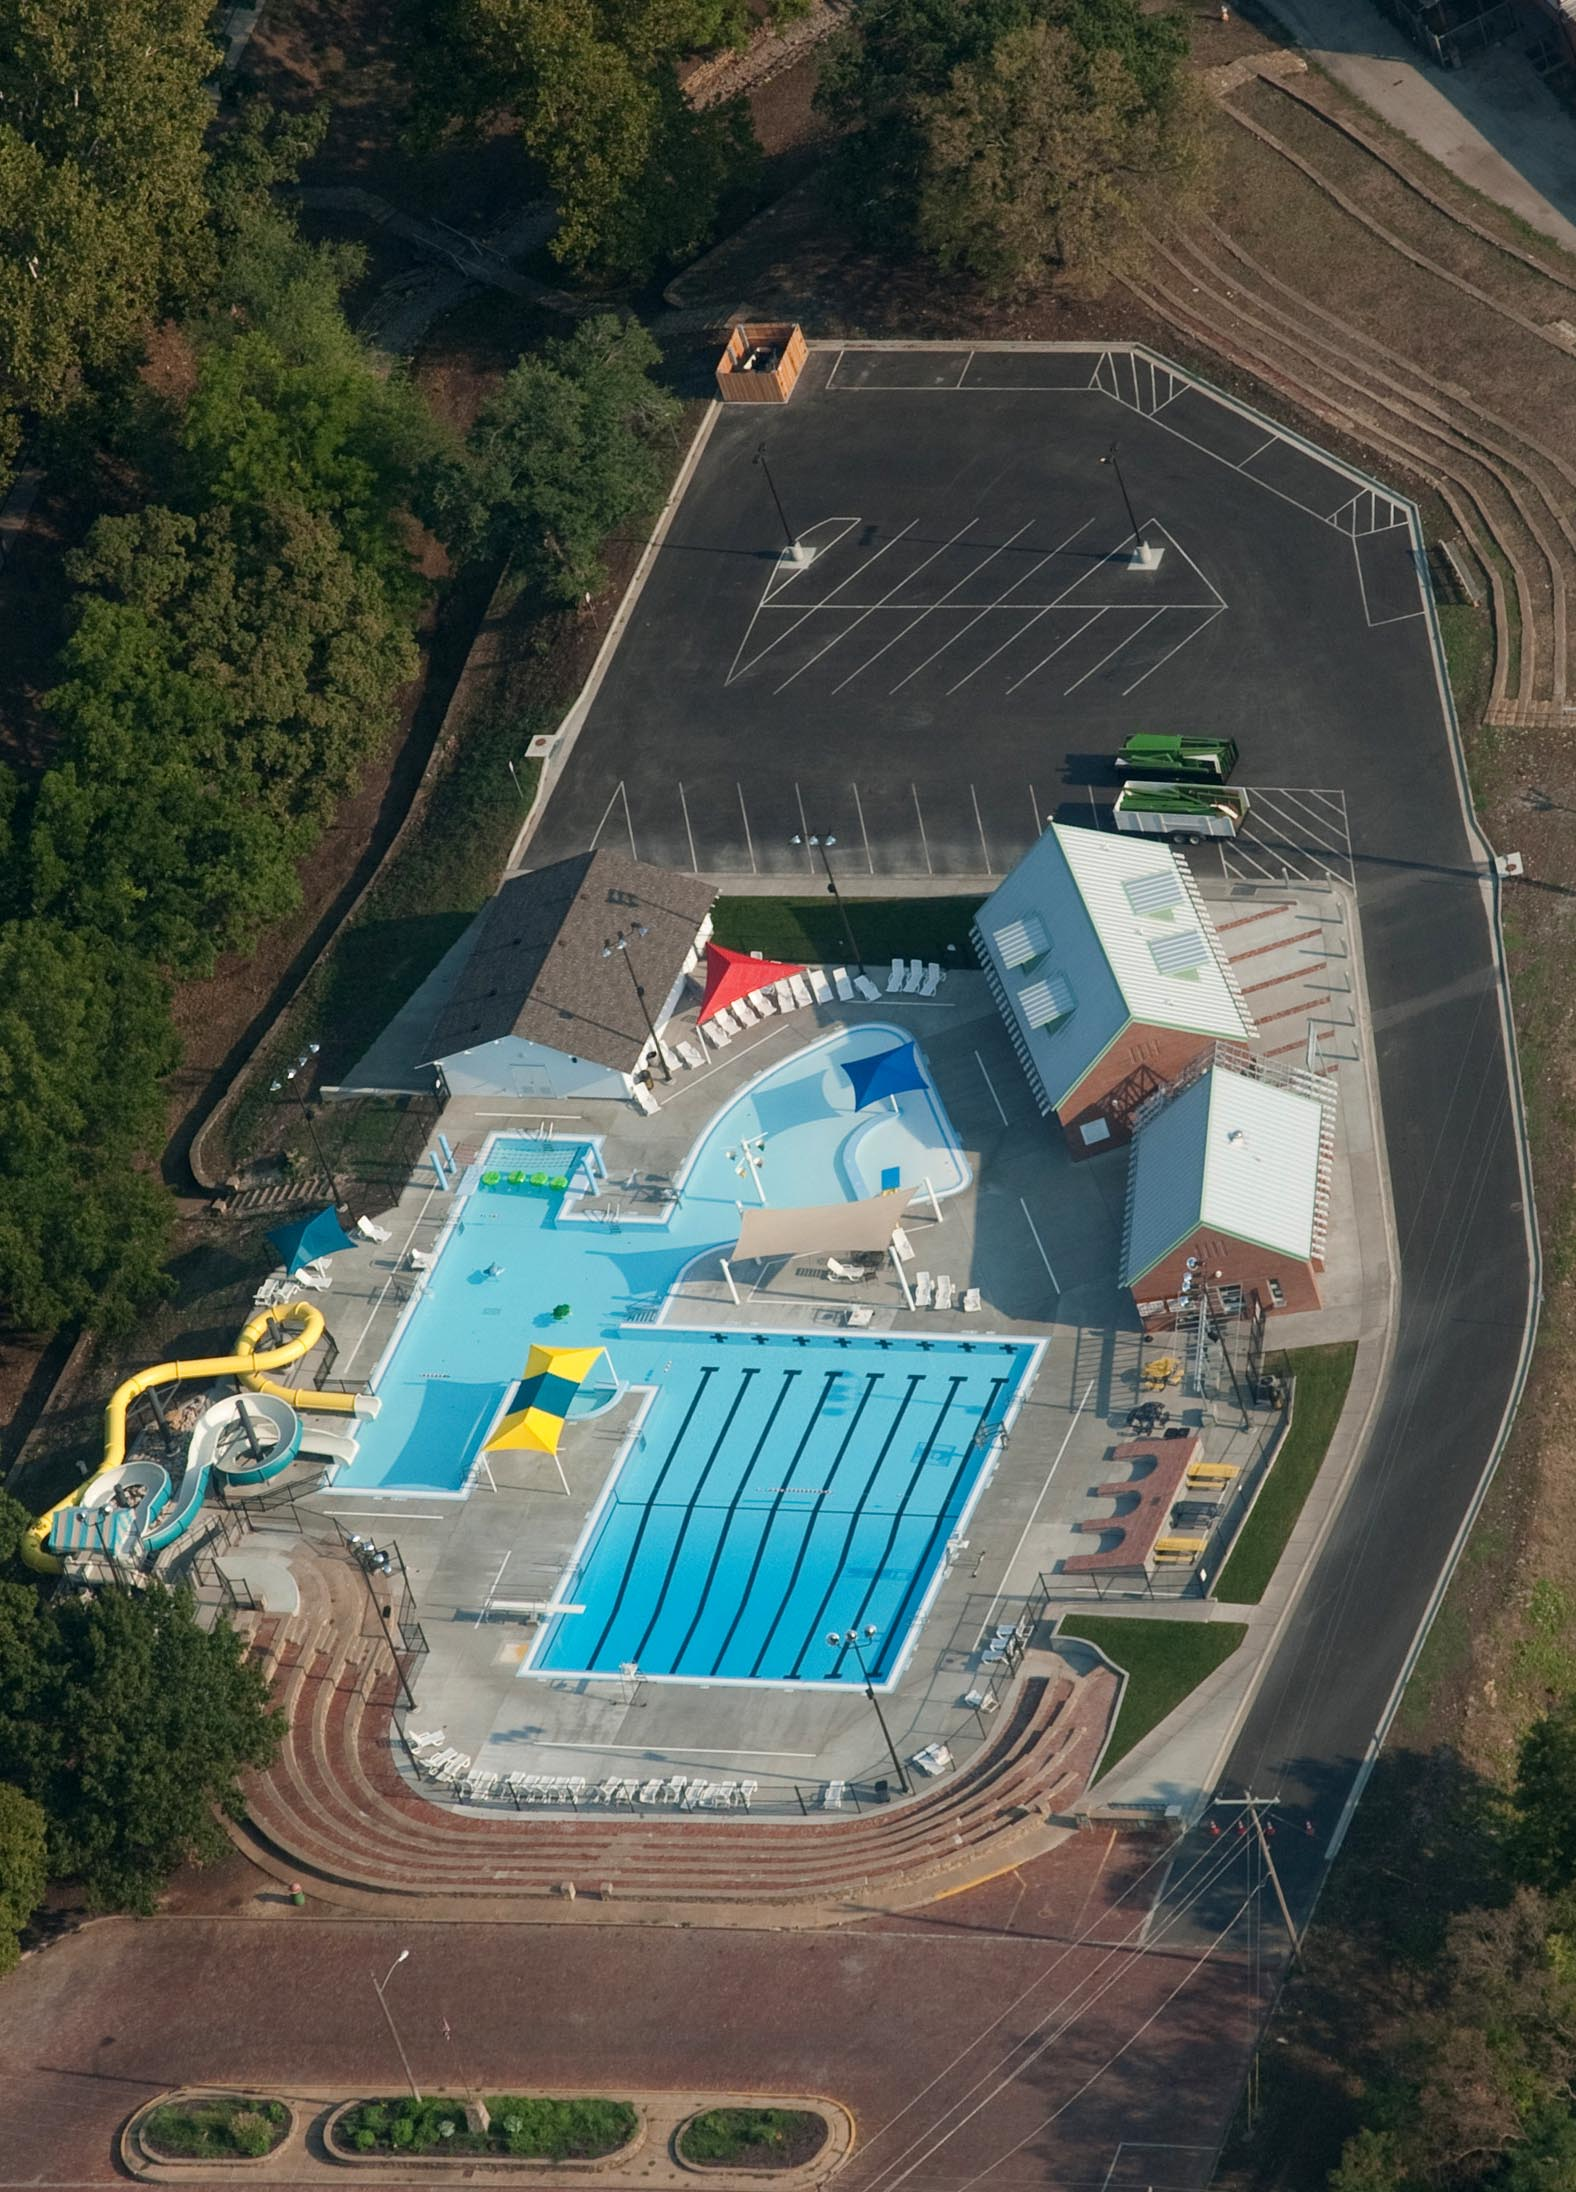 Aerial View of Aquatic Center